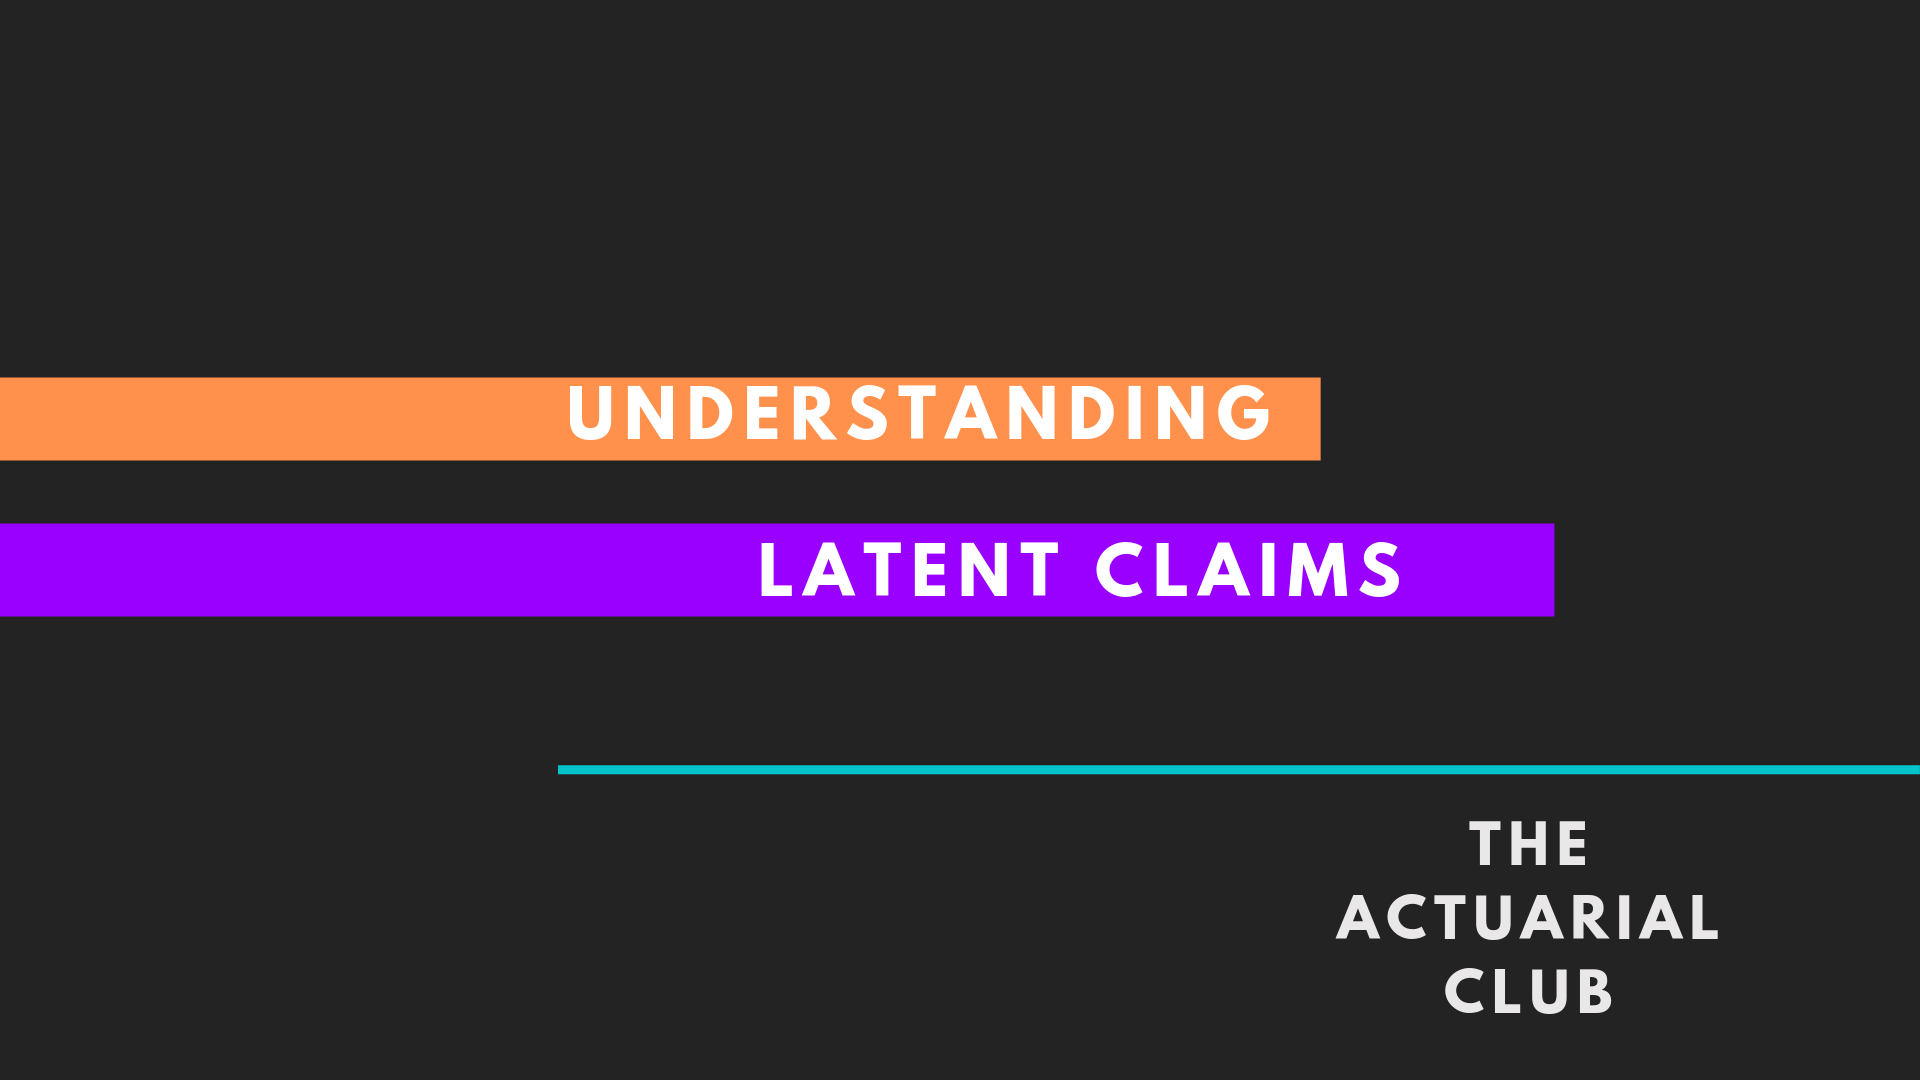 Latent Claims The Actuarial Club